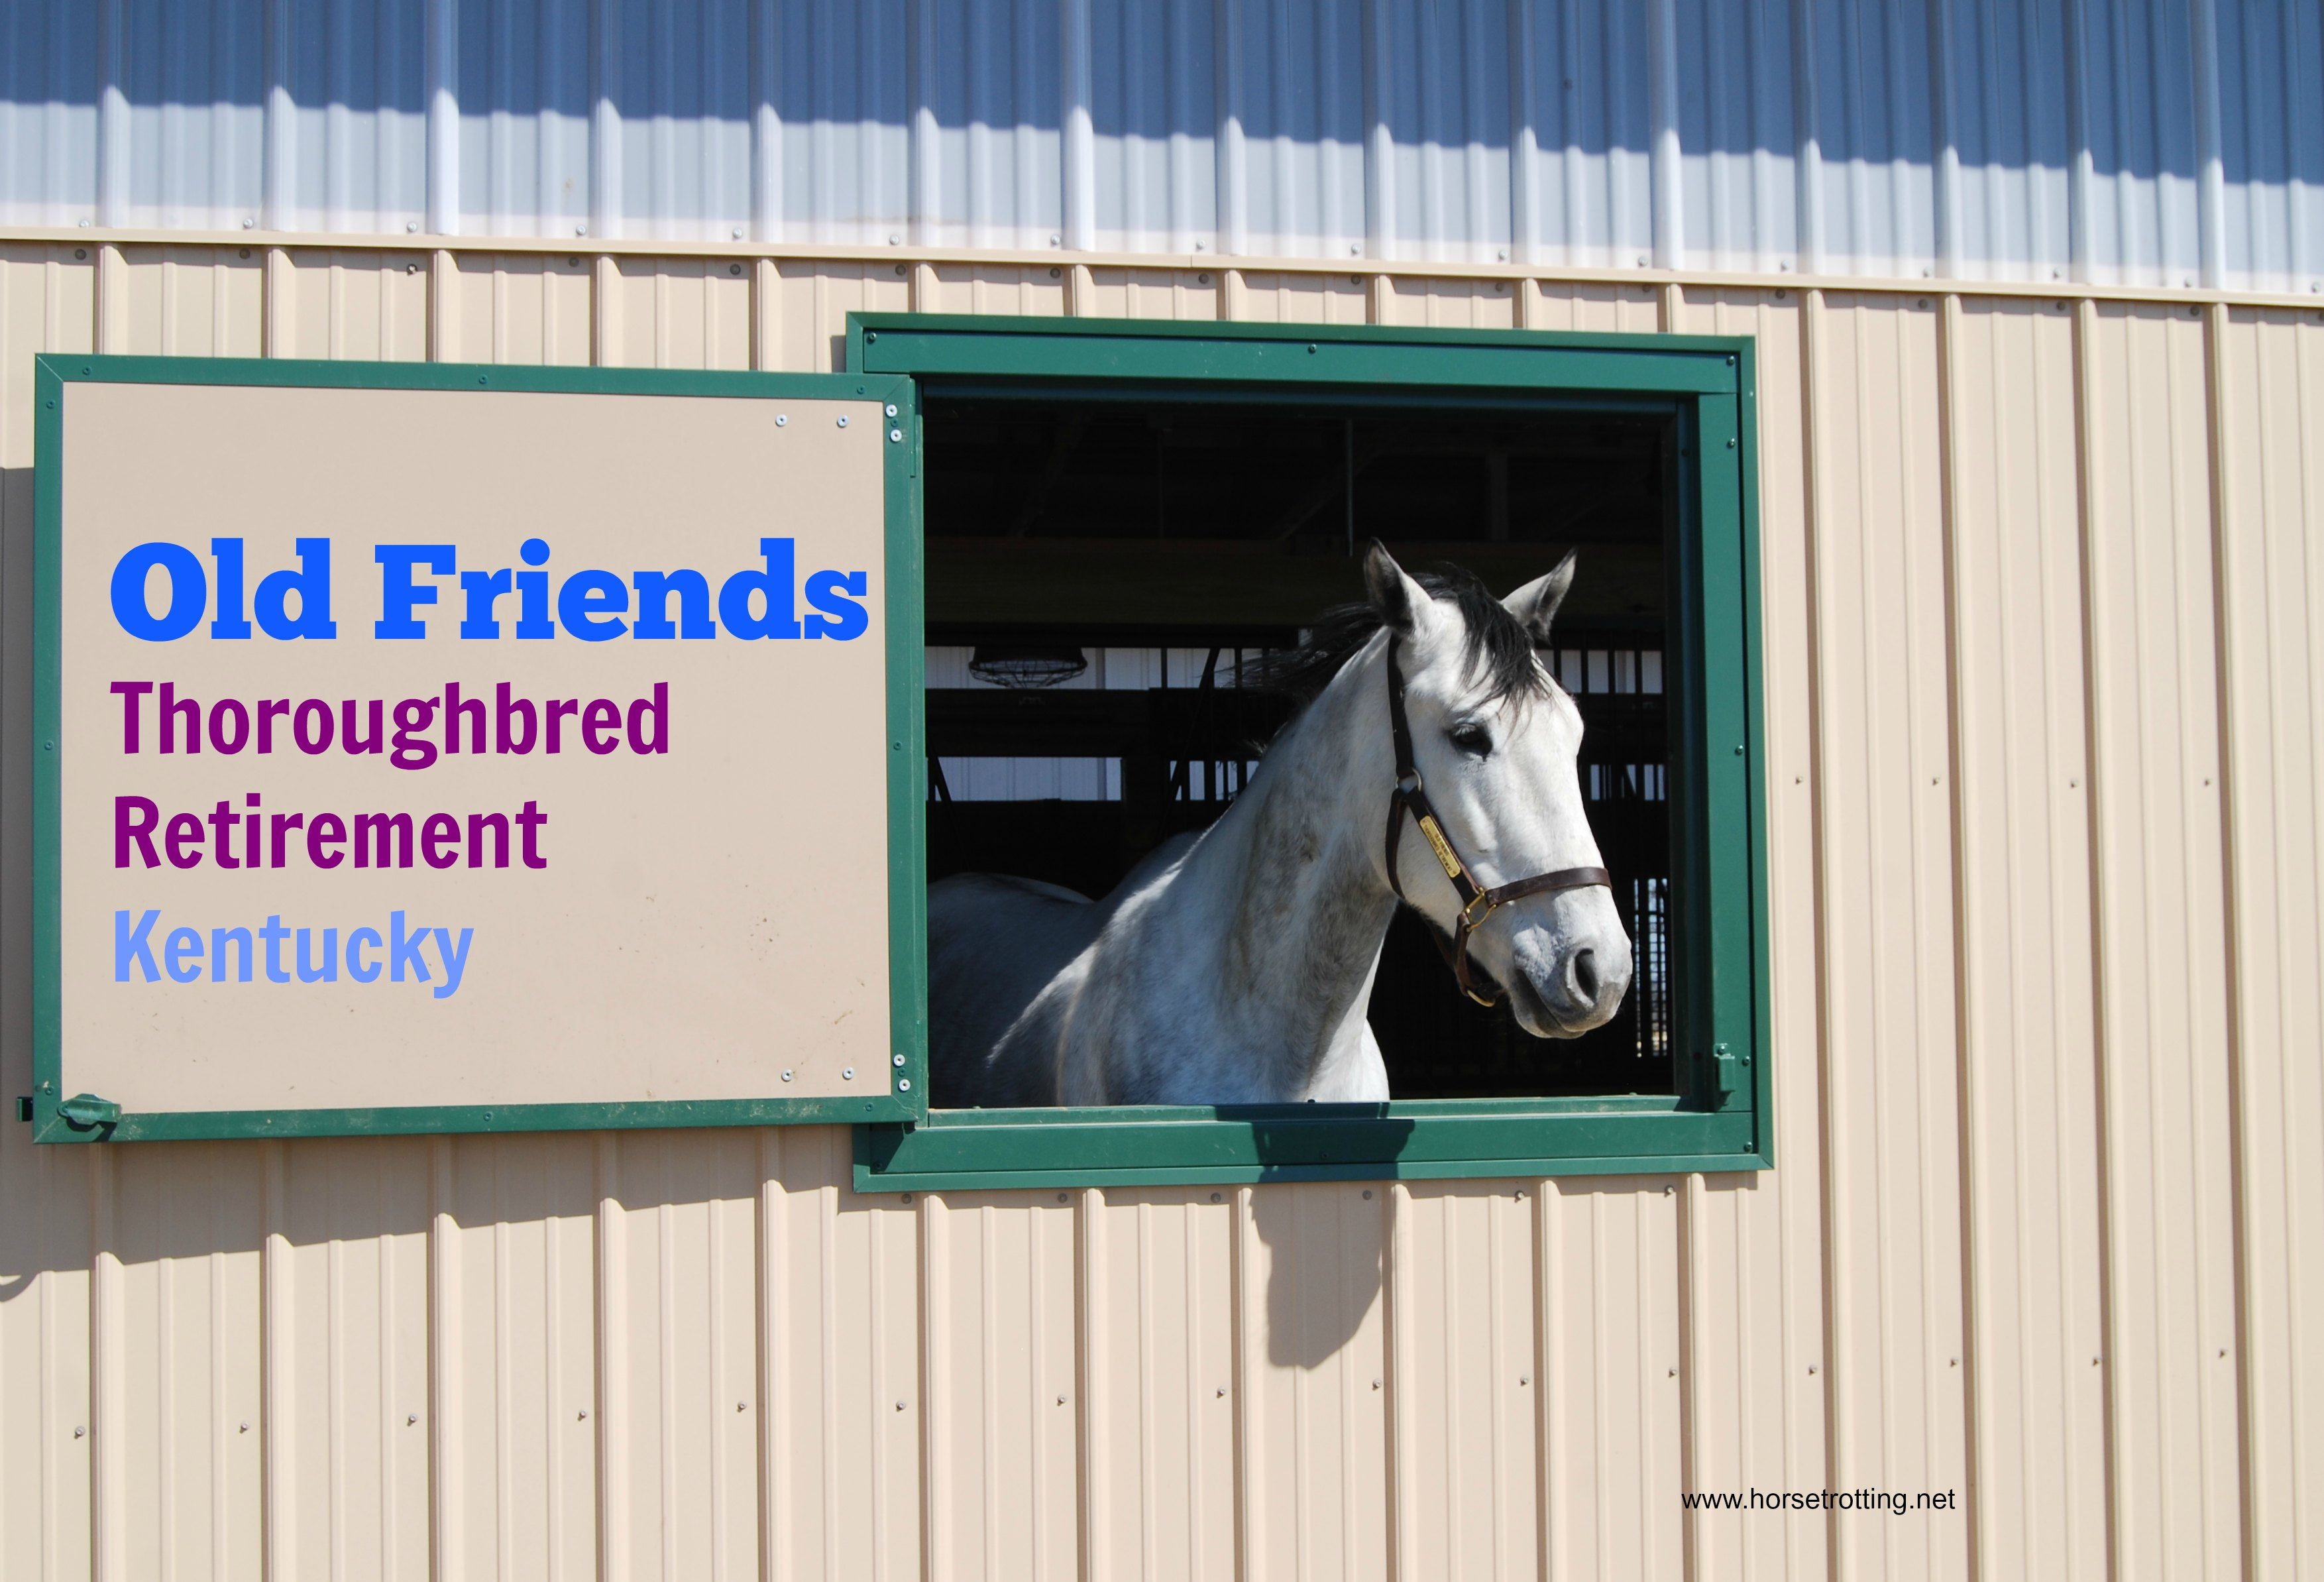 A Year of Heroes #6: Old Friends Thoroughbred Retirement, Lexington, KY